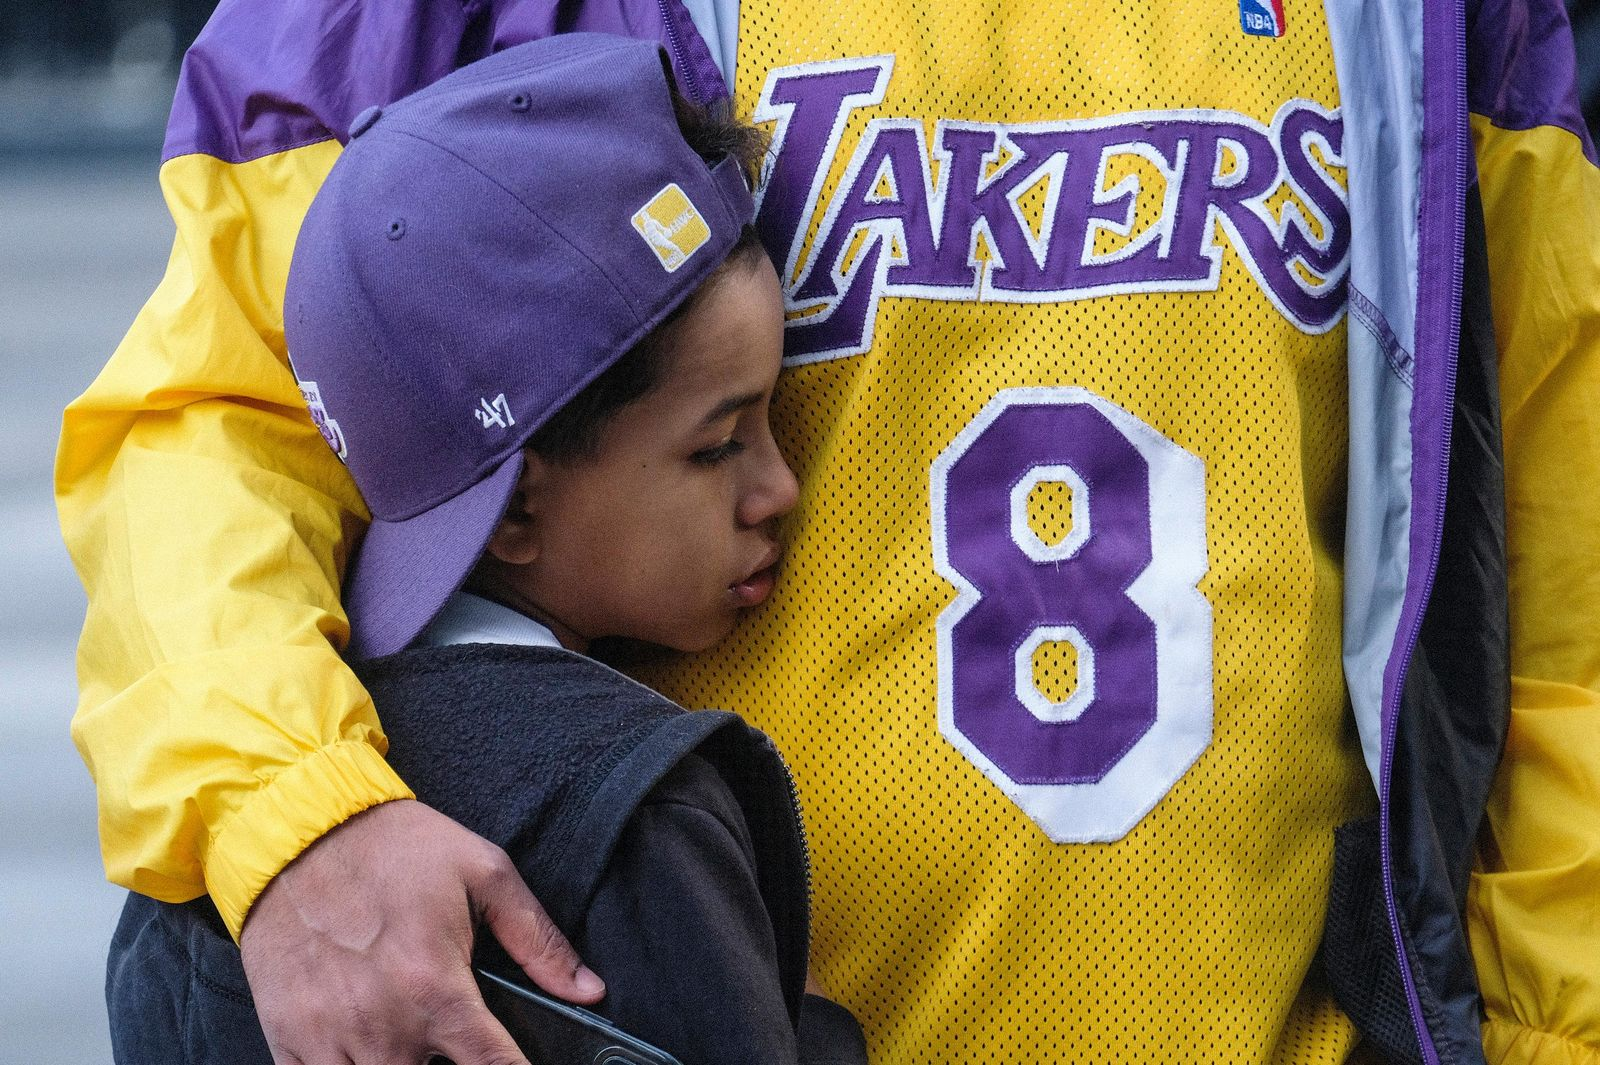 Eric Mascarenhas comforts his son Nicolas at a memorial for Kobe Bryant near Staples Center Monday, Jan. 27, 2020, in Los Angeles. Bryant, the 18-time NBA All-Star who won five championships and became one of the greatest basketball players of his generation during a 20-year career with the Los Angeles Lakers, died in a helicopter crash Sunday. (AP Photo/Ringo H.W. Chiu)